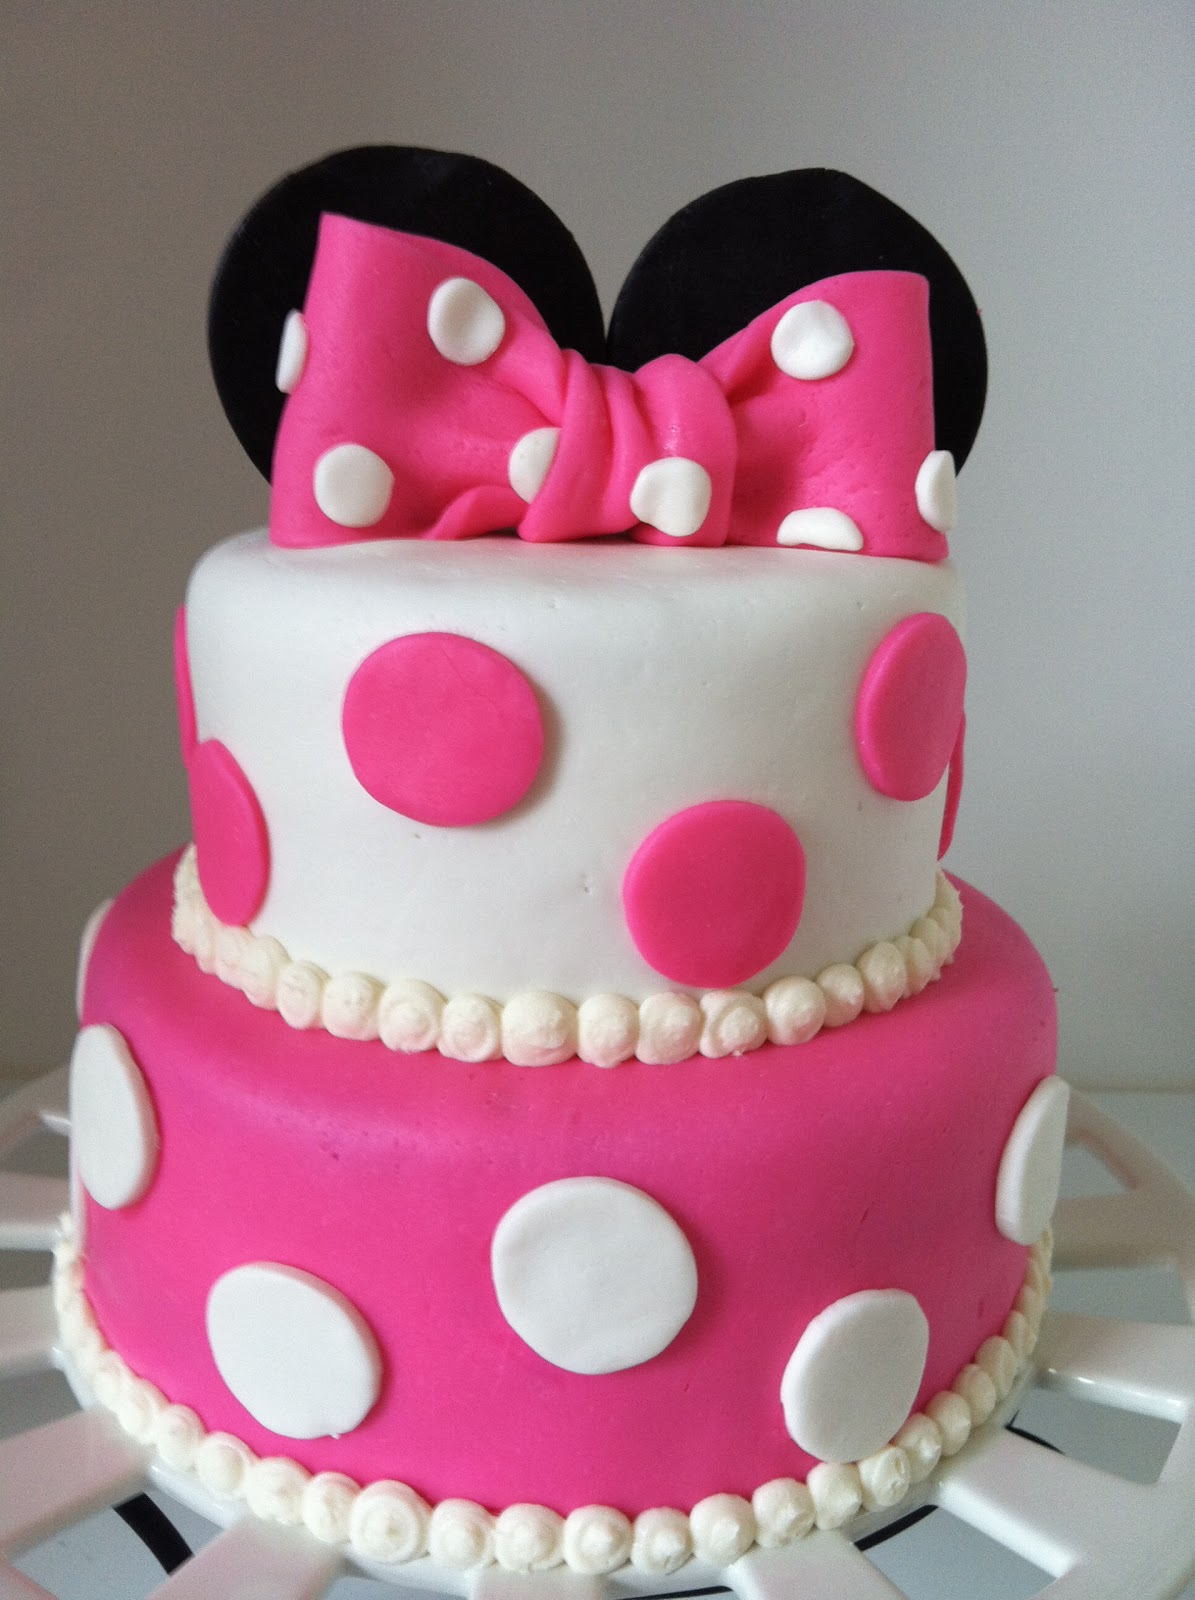 1195 X 1600 In 32 Brilliant Image Of Birthday Cakes For Girls